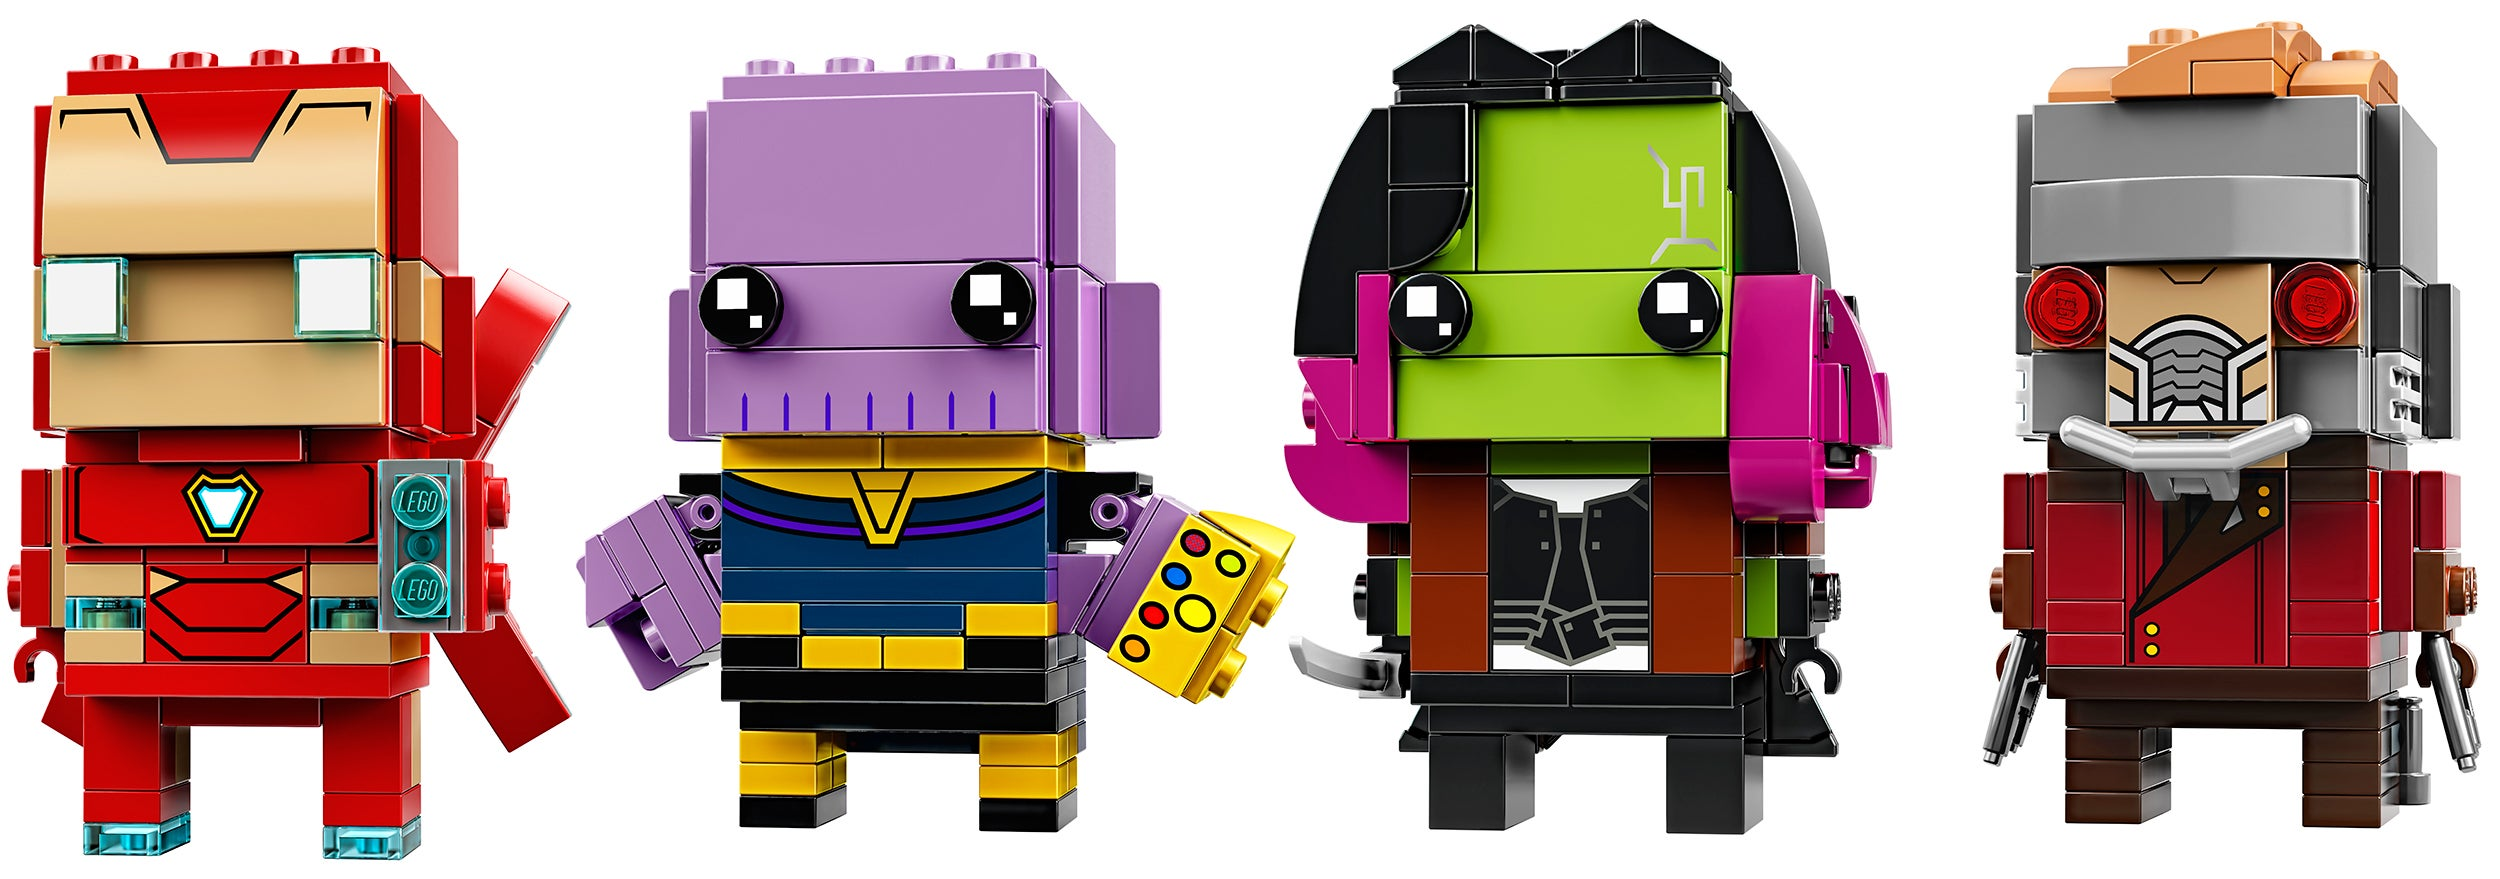 Exclusive: Thanos, Iron Man, Gamora, And Star-Lord Are Getting The Lego Brickheadz Treatment